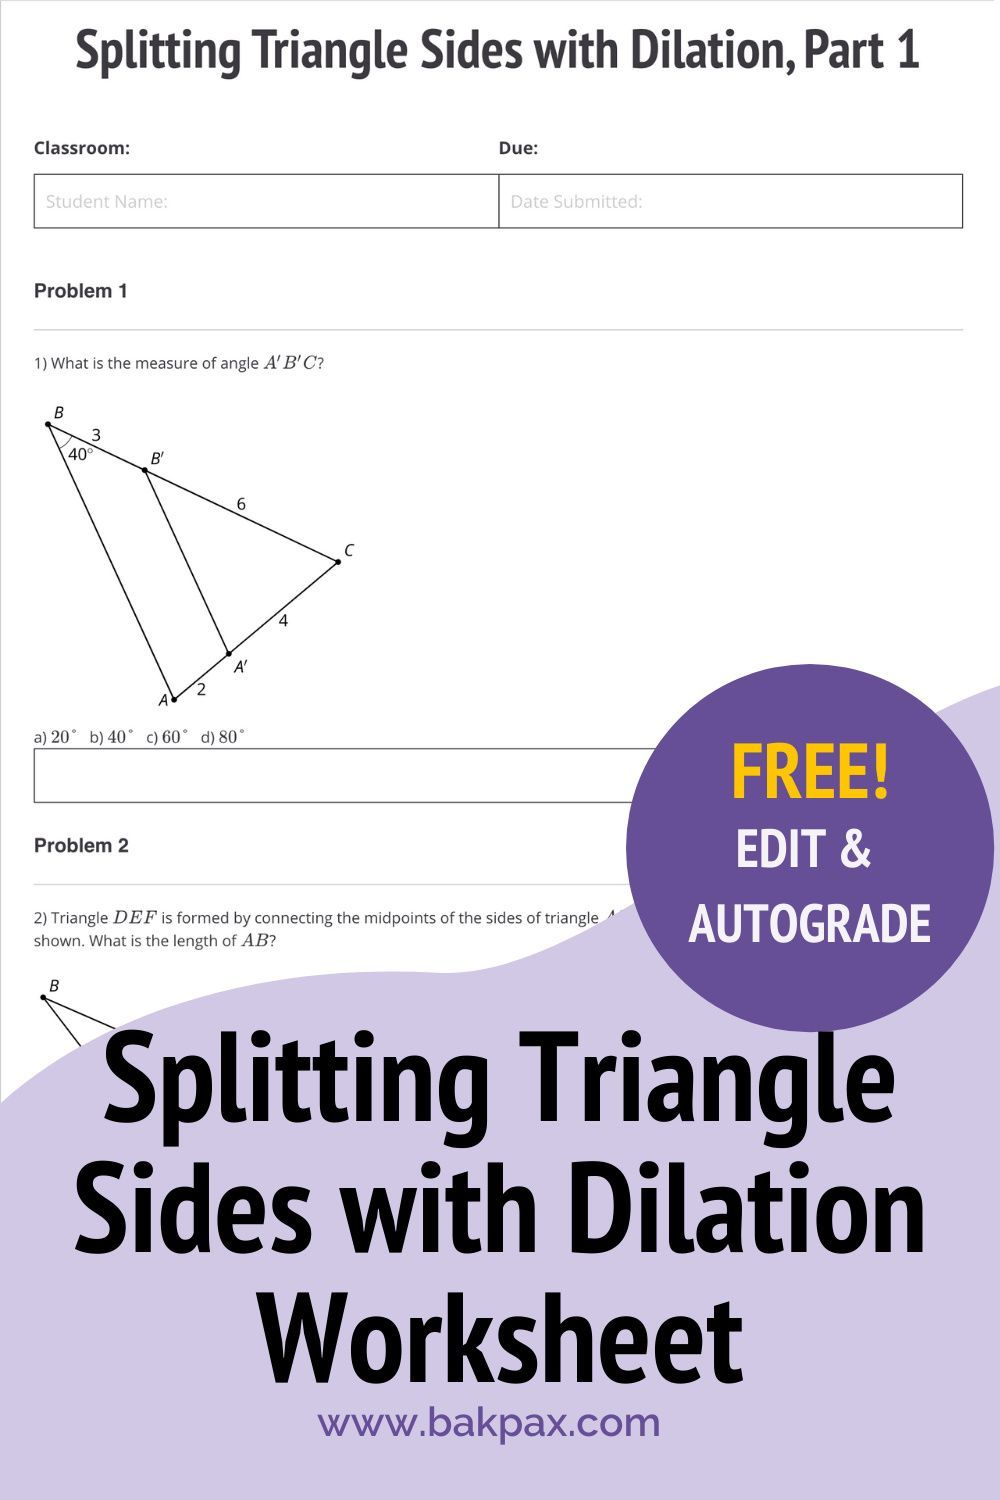 Free Splitting Triangle Sides With Dilation Geometry Worksheet Geometry Worksheets Triangle Sides Worksheets